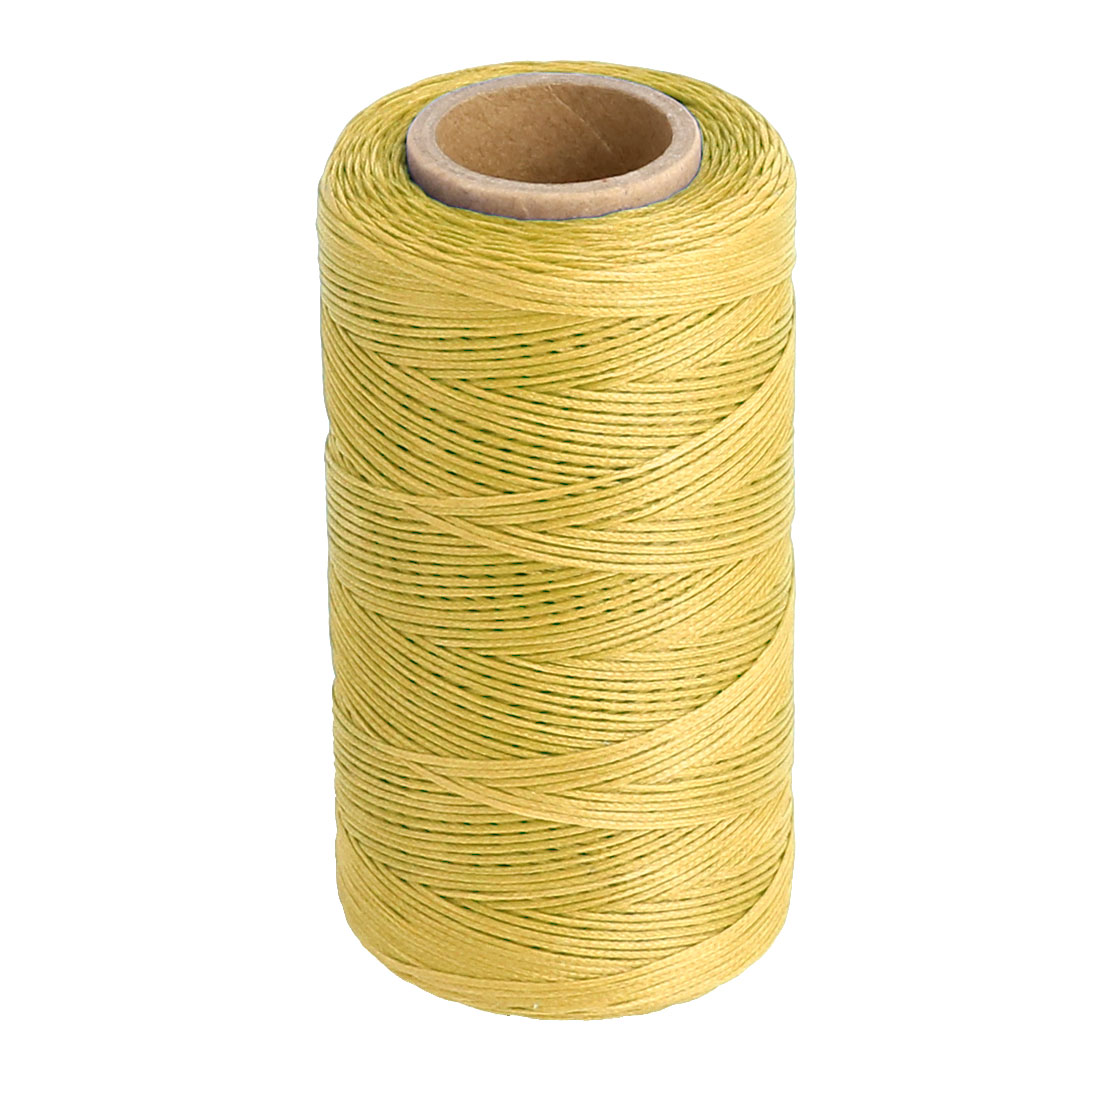 Polyester Leather Leatherware Crafting Sewing Thread String Reel Spool Yellow